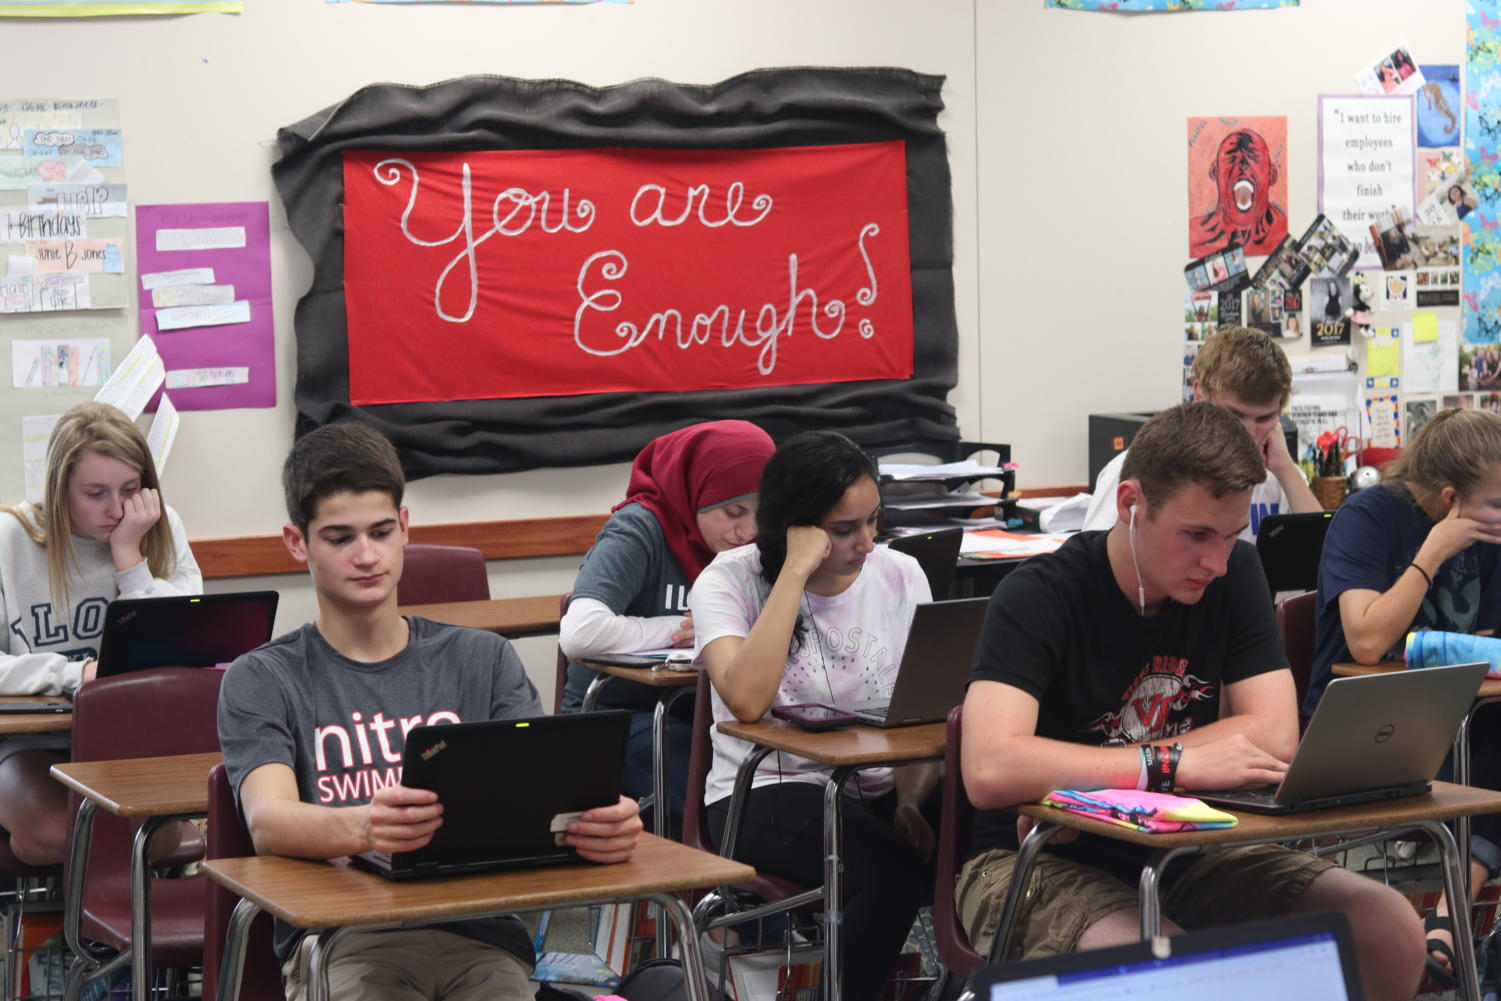 Students prep for PSAT in Susan Sitran's third period class.